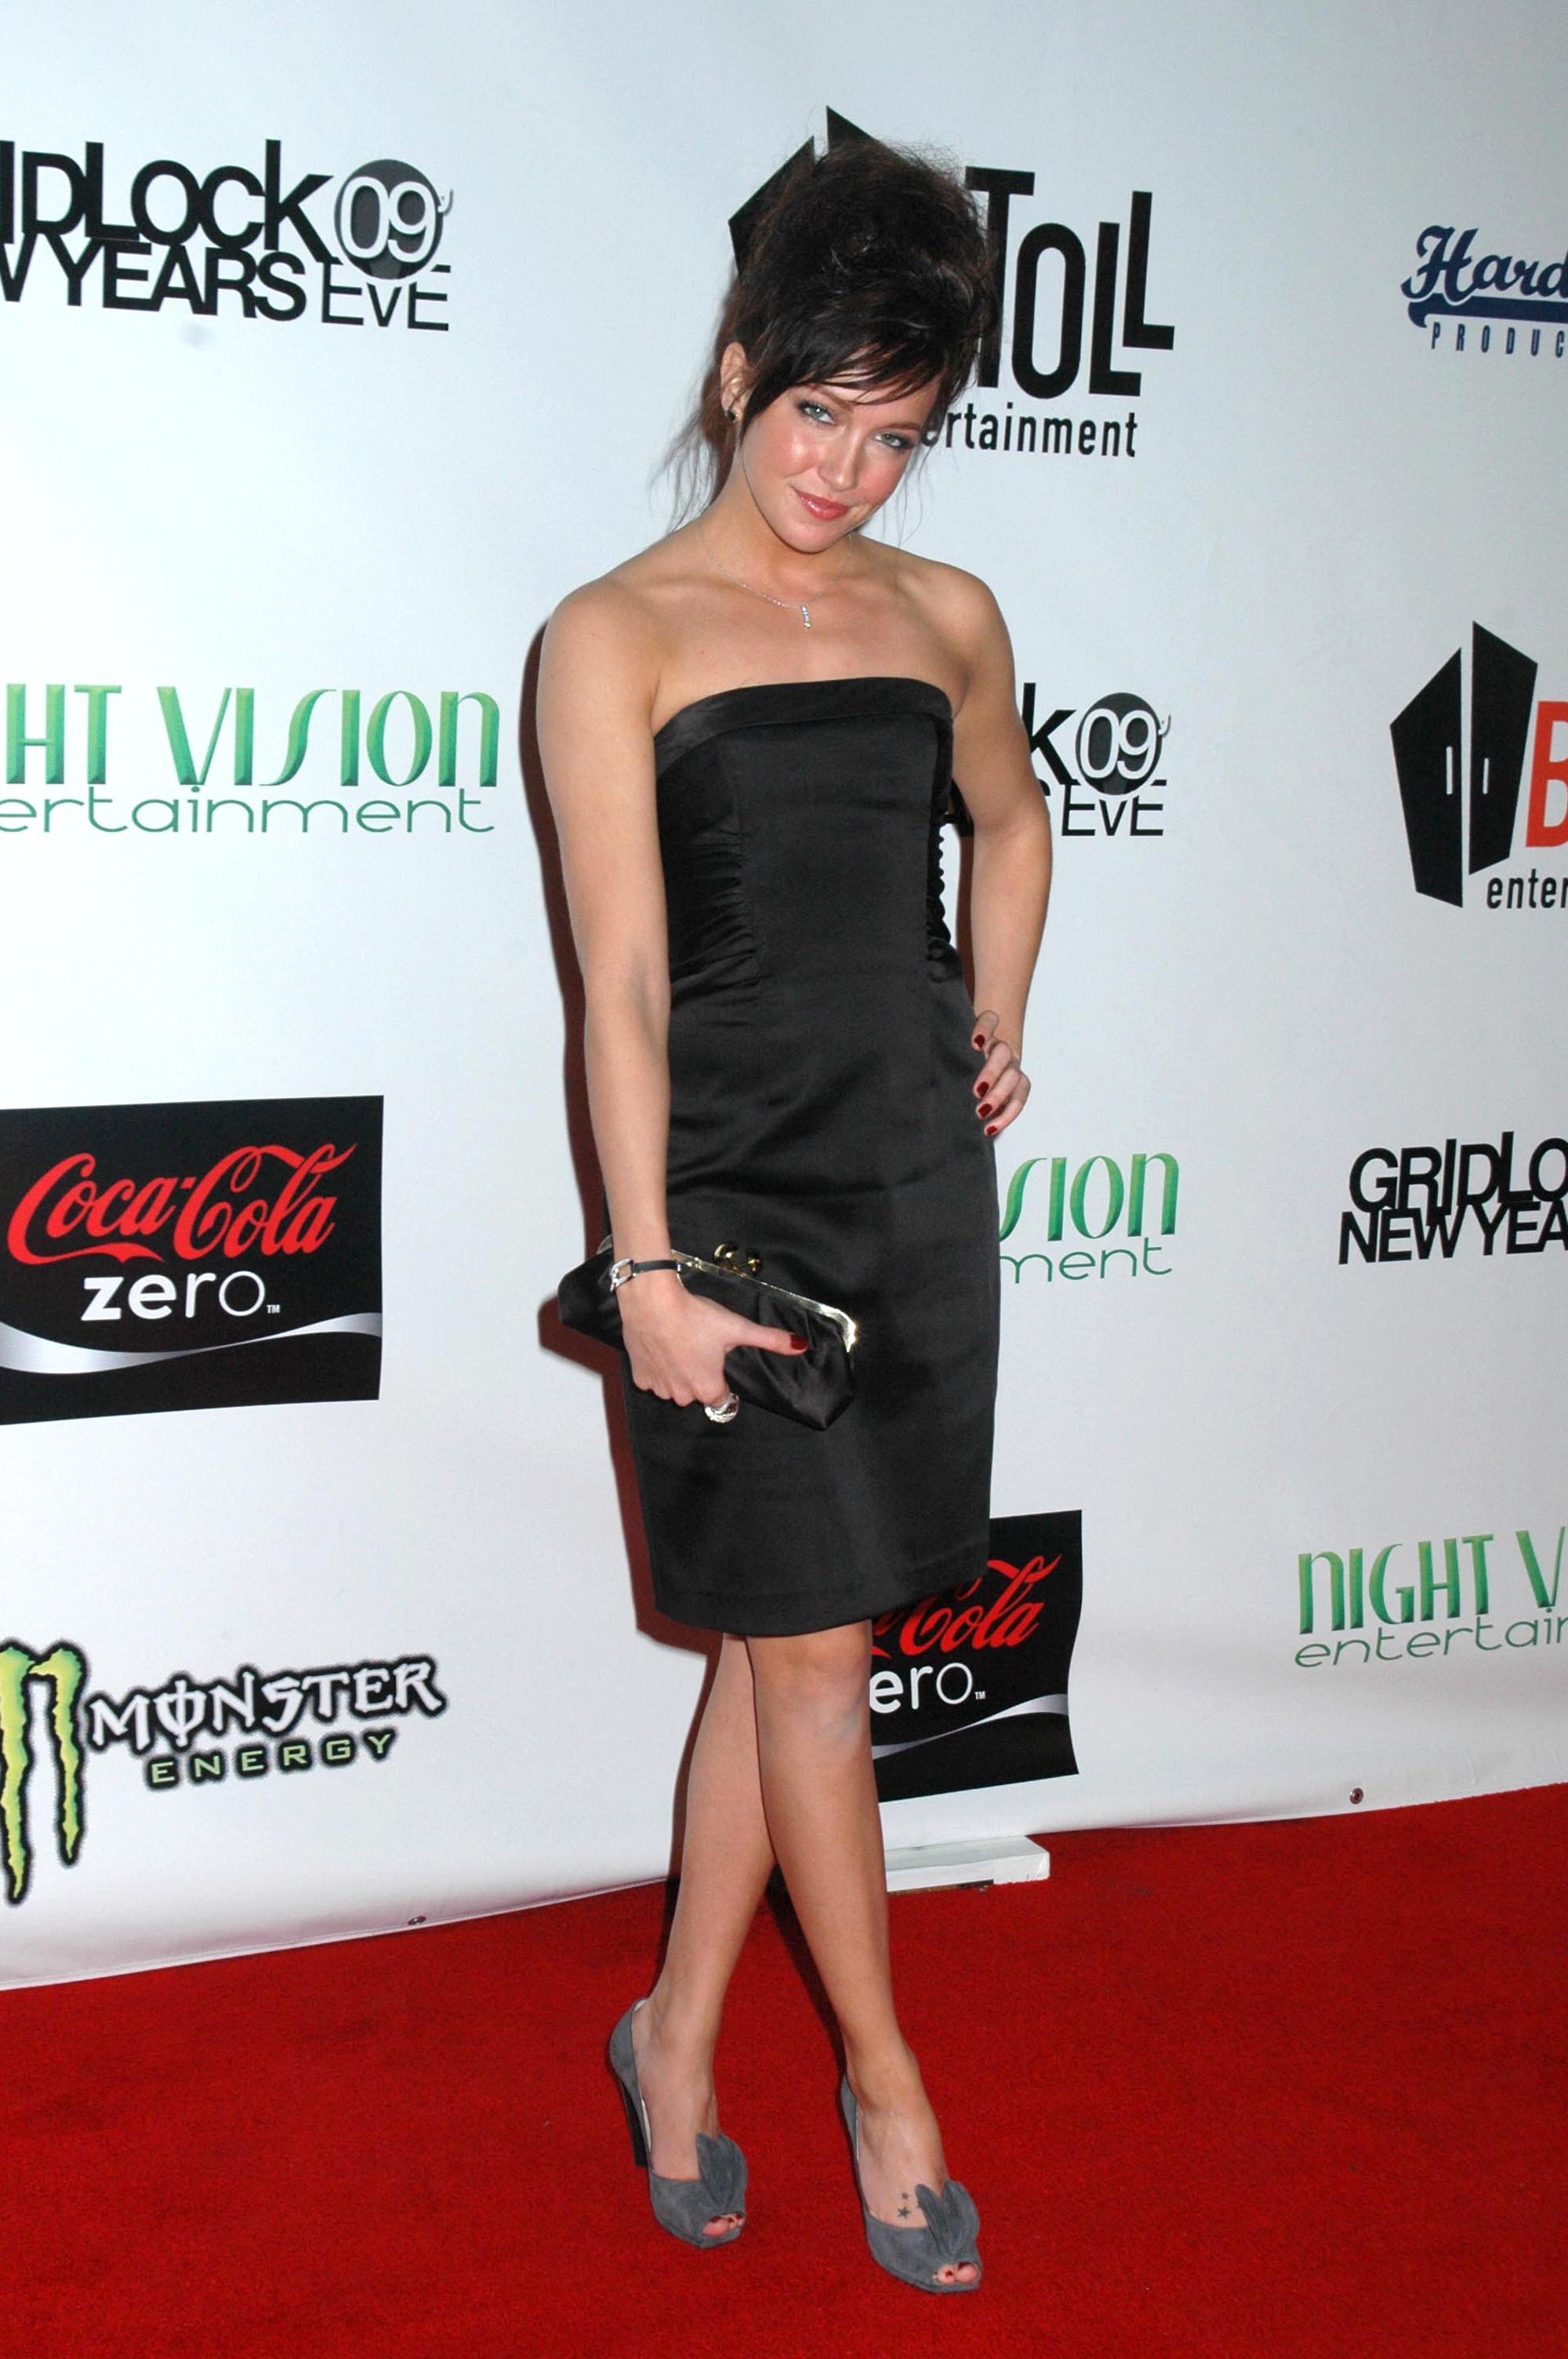 18889_katie-cassidy-new-years-eve_723_122_386lo.jpg